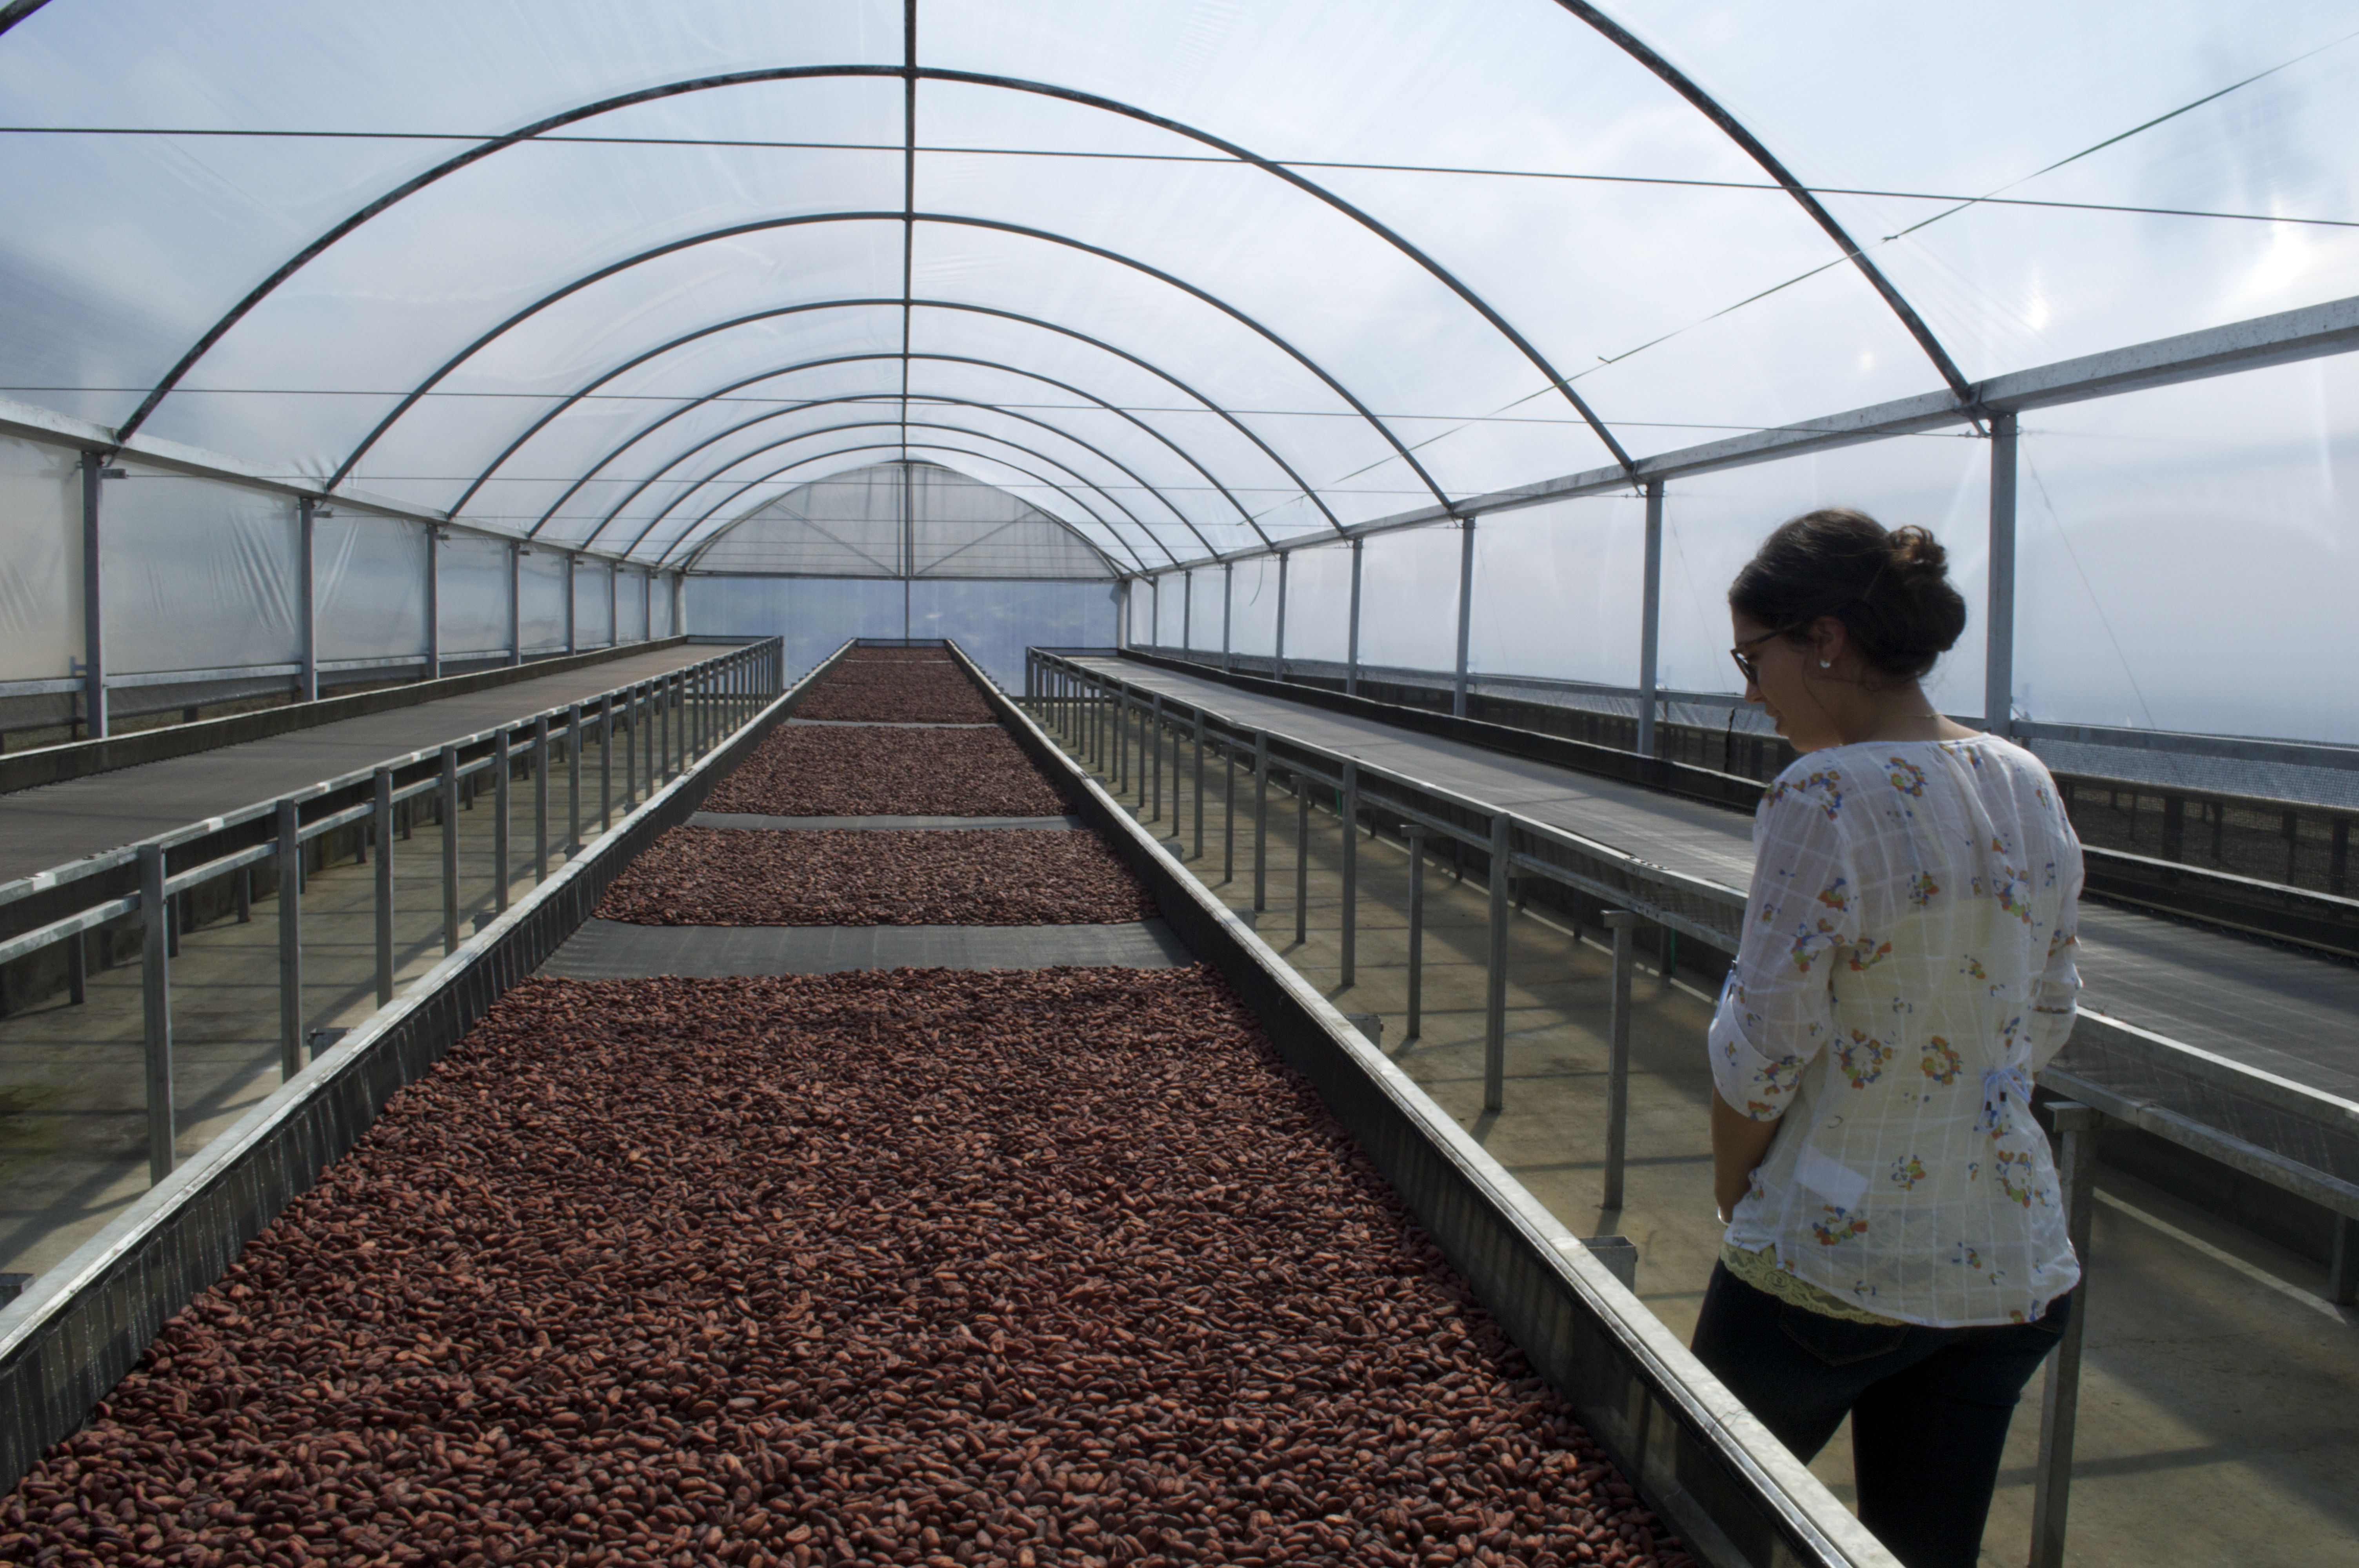 Visiting a cocoa drying facility in Bahia, Brazil. These